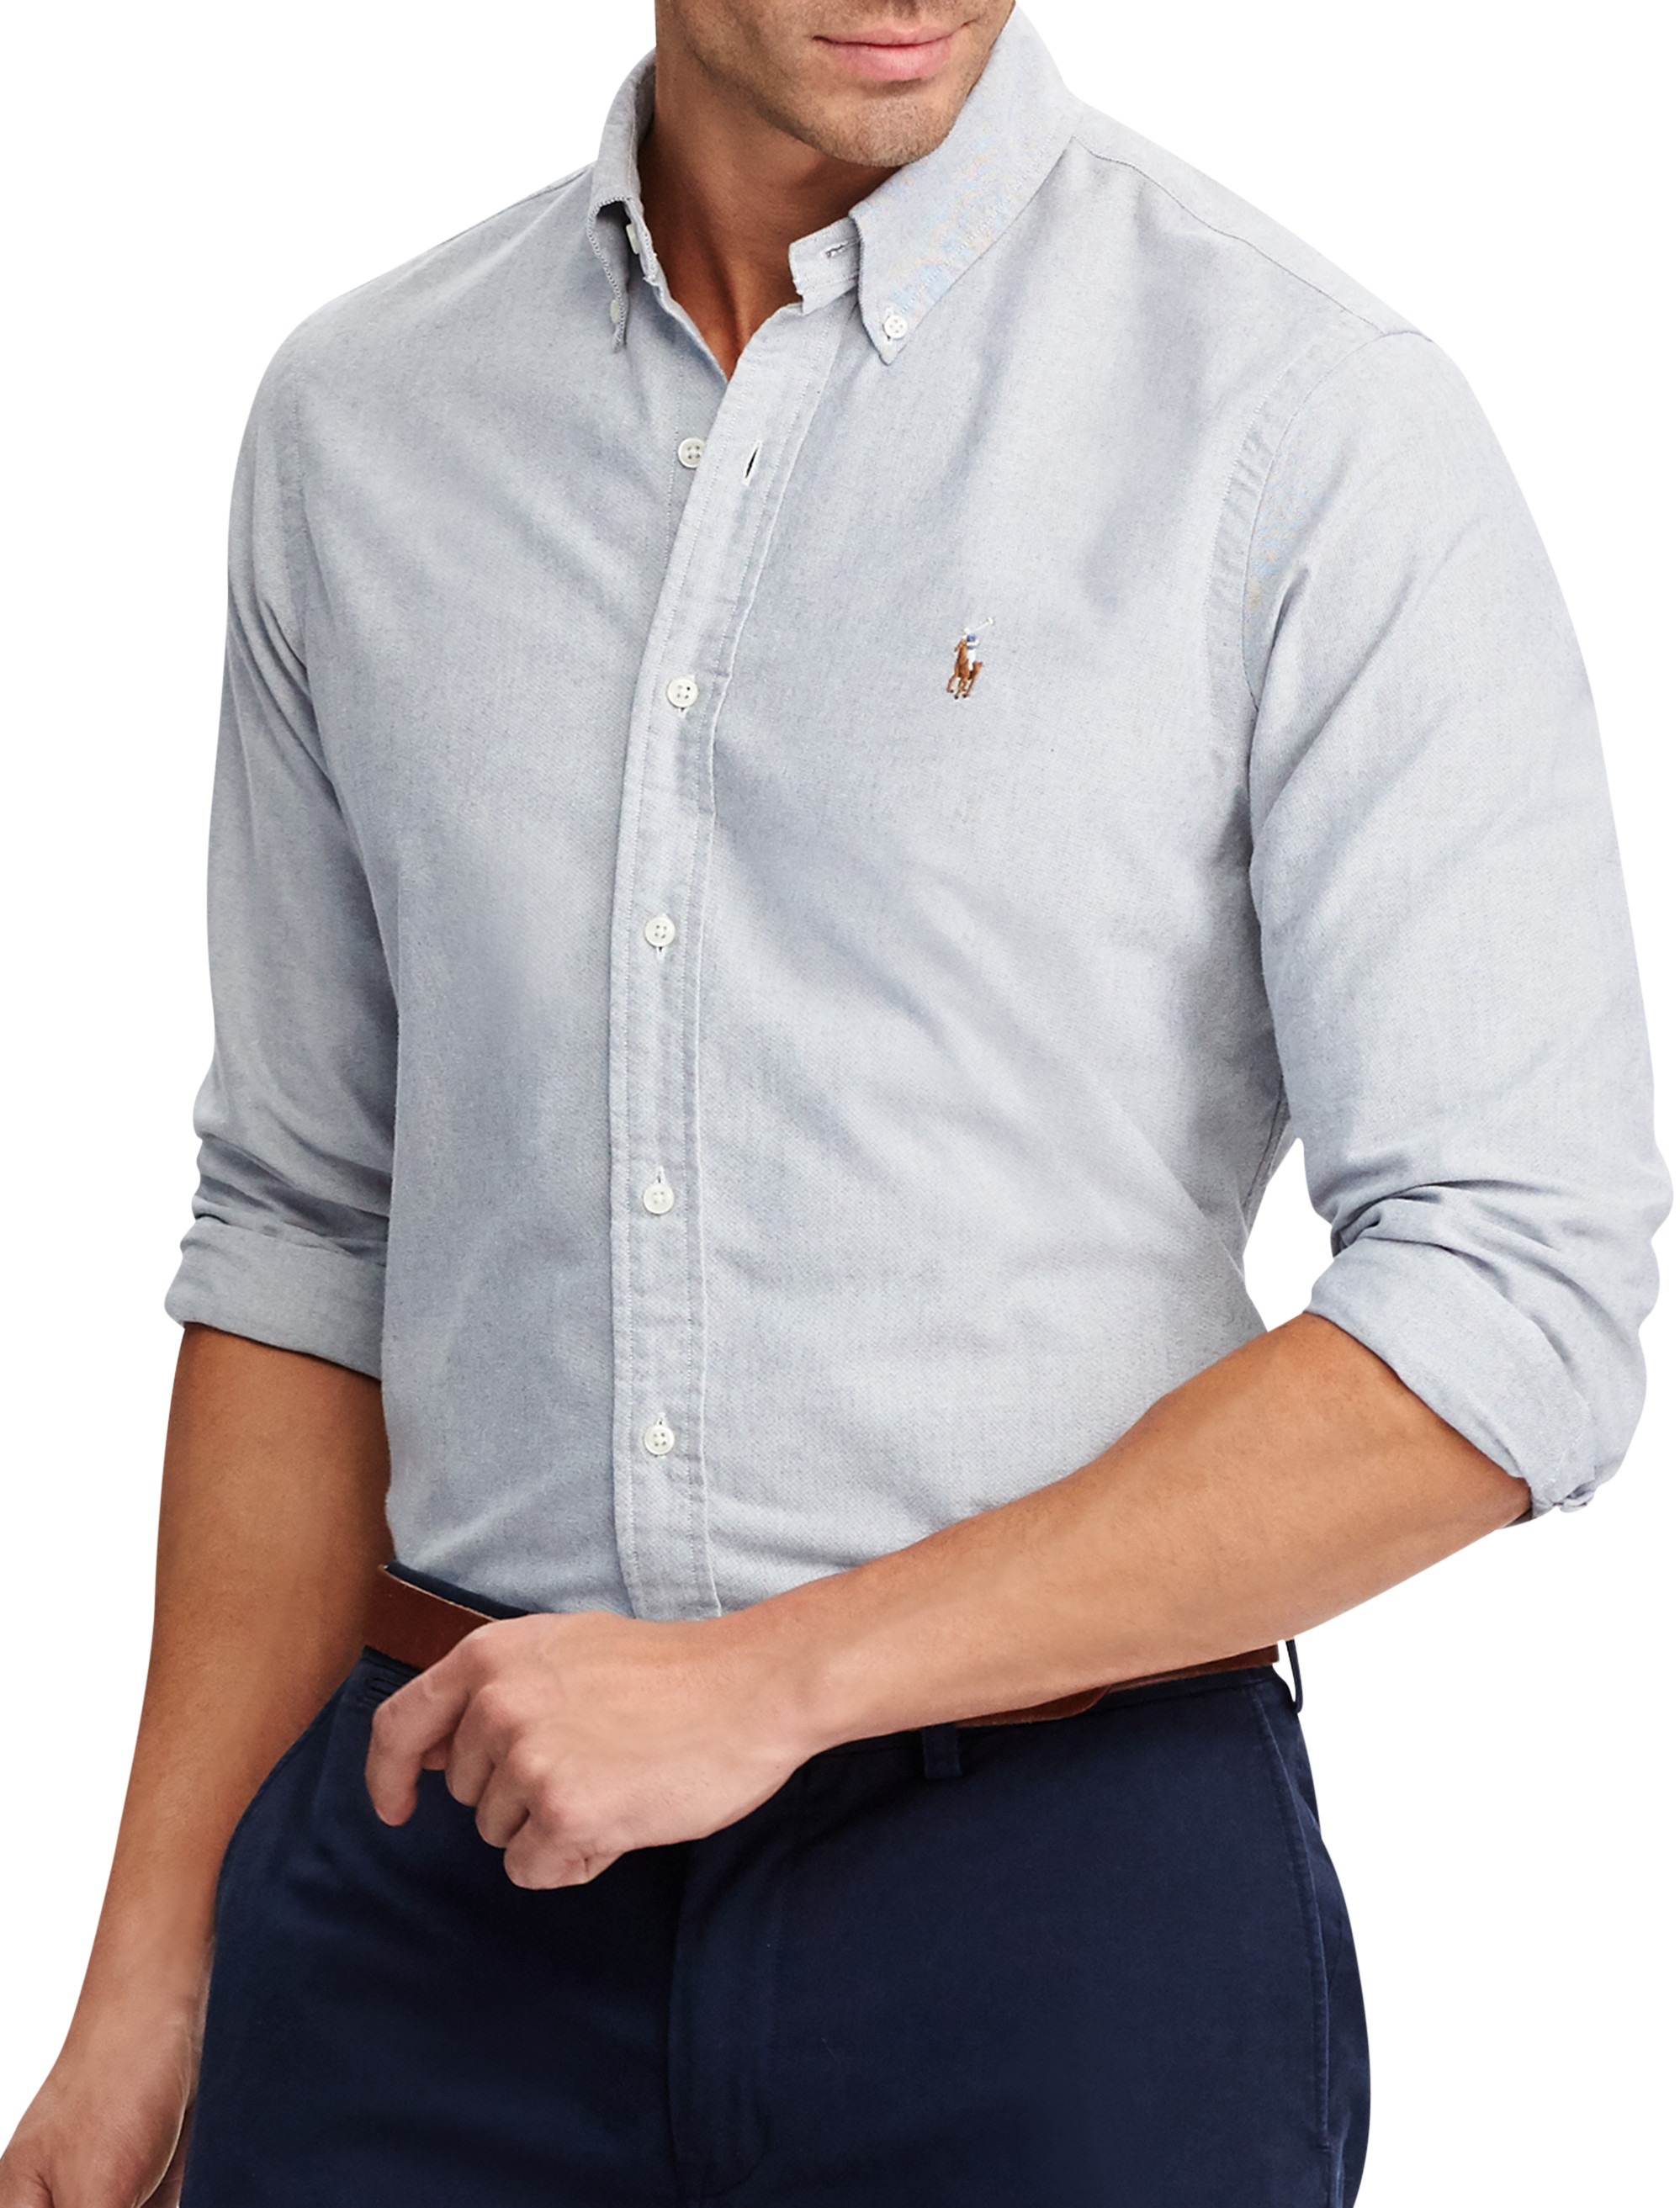 Polo Ralph Lauren Textured Oxford Sport Shirt | Tuggl